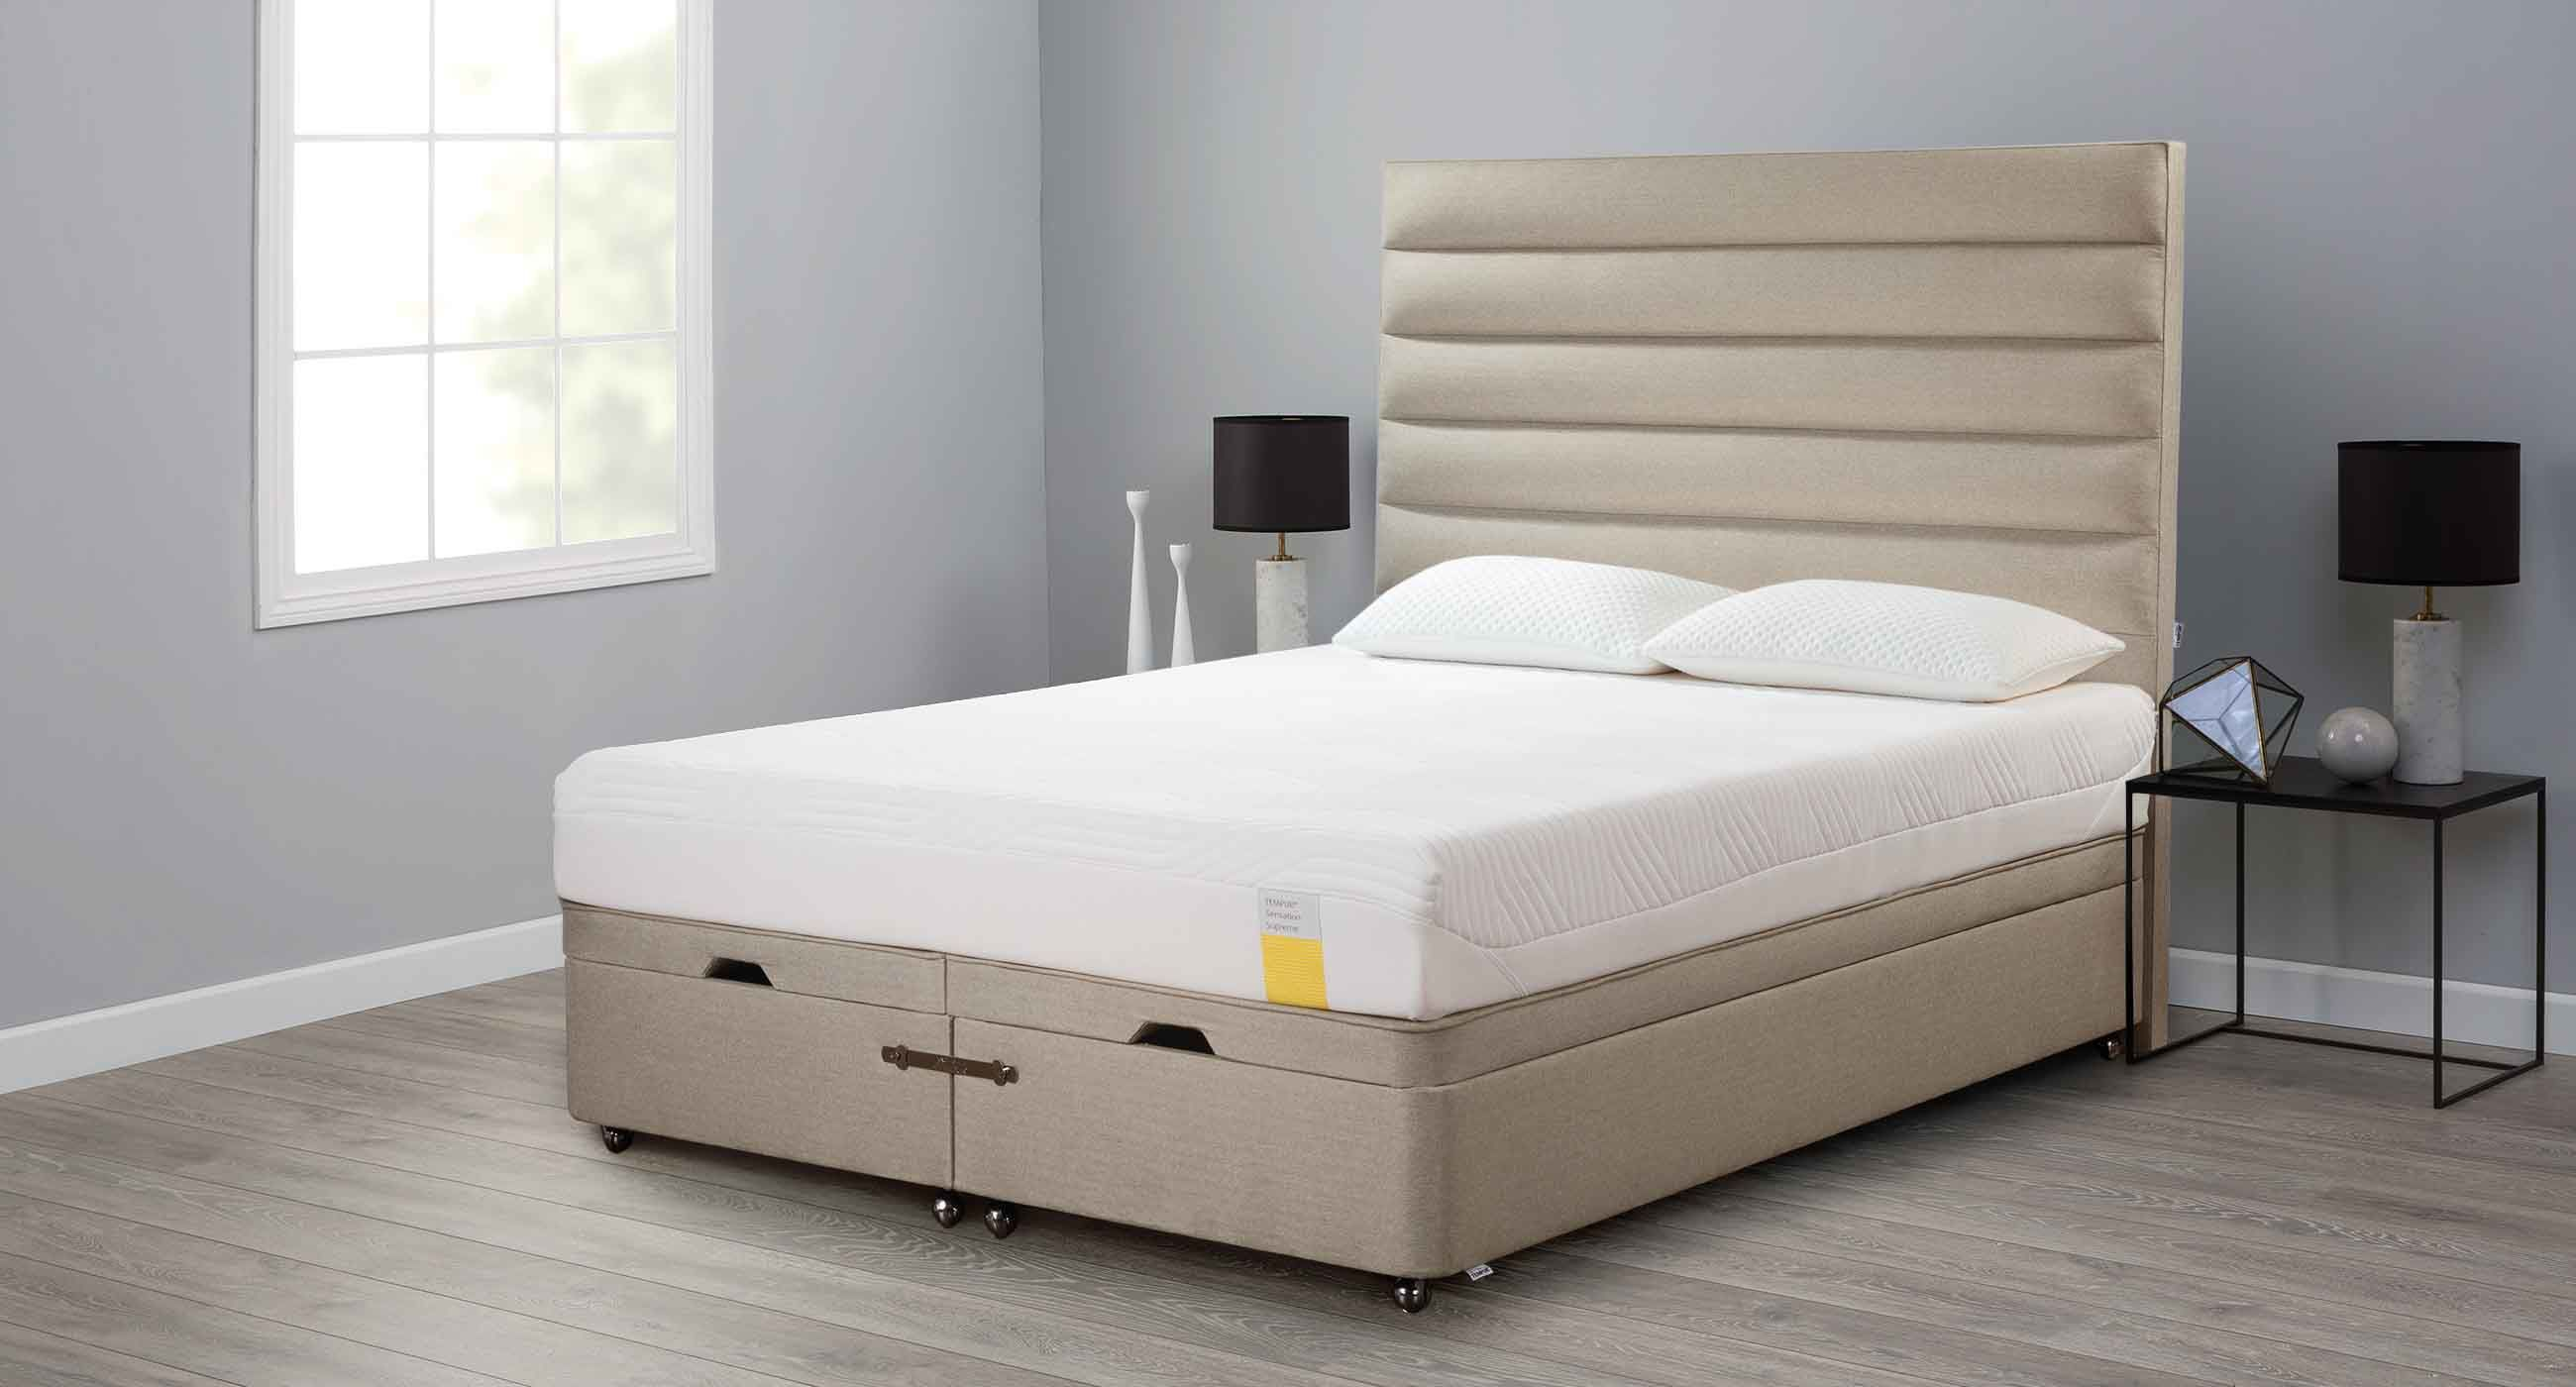 Awe Inspiring Double Bed Contemporary Upholstered With Headboard Lamtechconsult Wood Chair Design Ideas Lamtechconsultcom